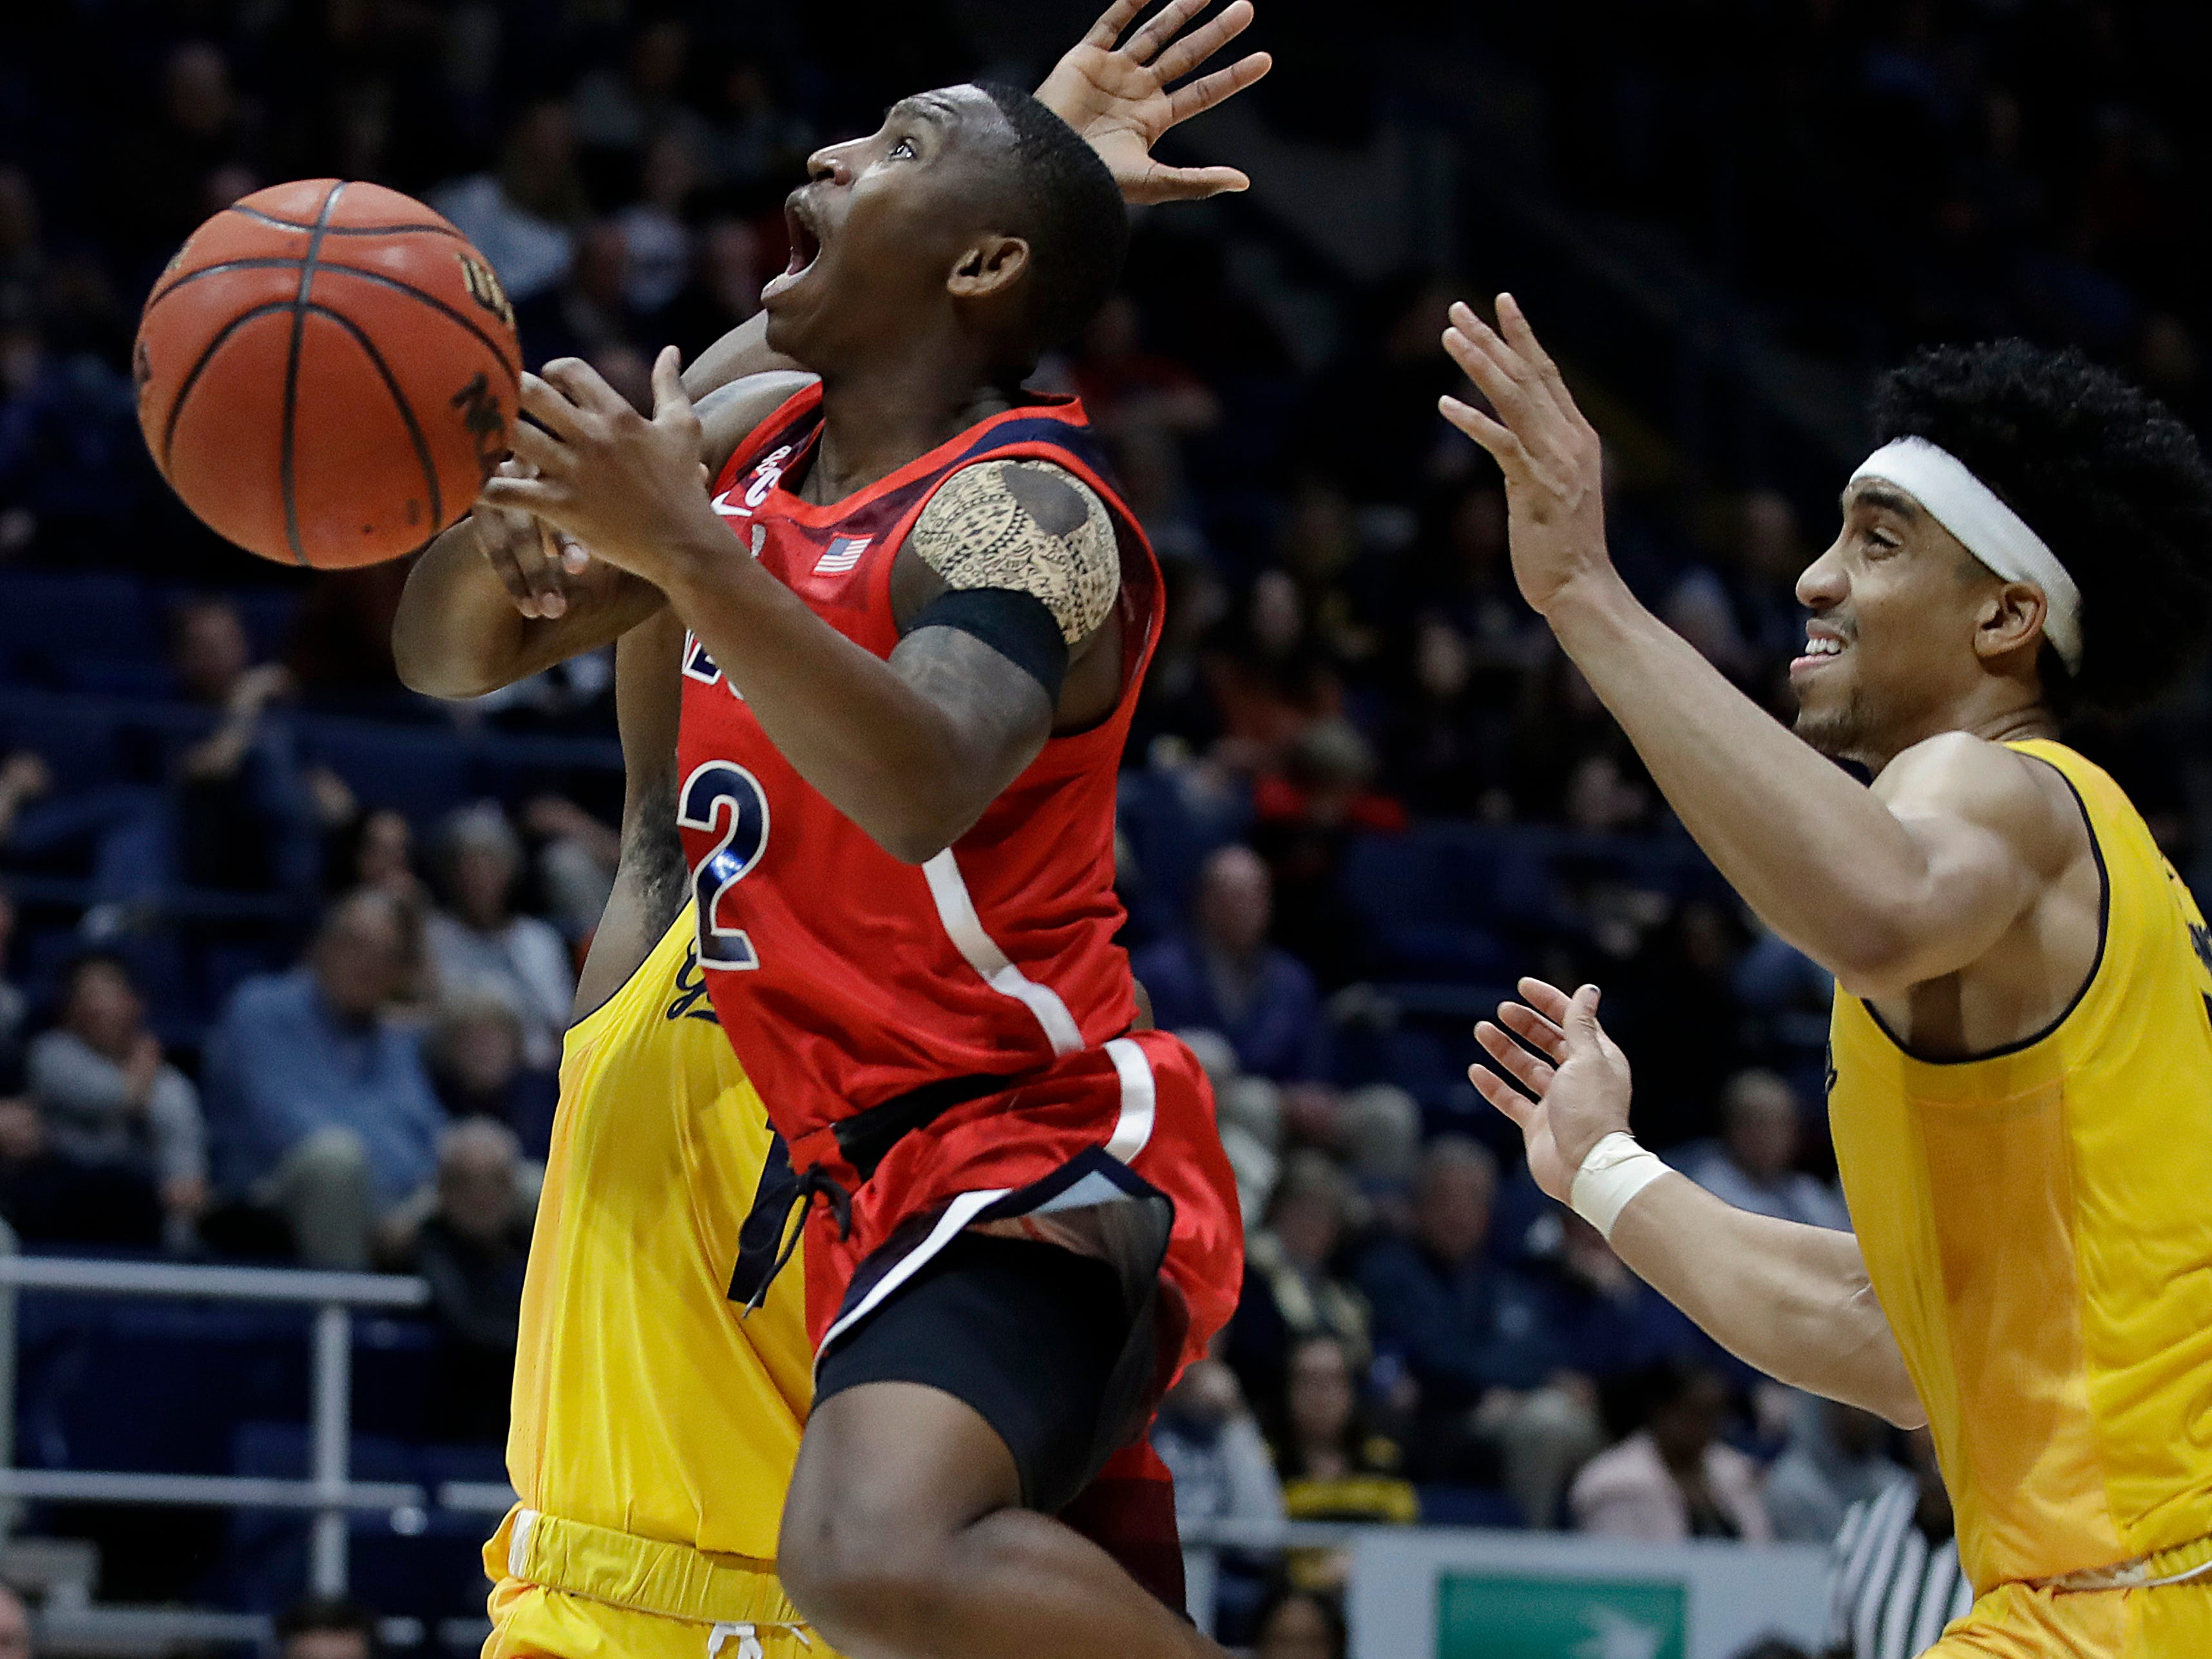 Arizona's Justin Coleman loses the ball as California's Darius McNeill, rear, defends during the second half of an NCAA college basketball game Saturday, Jan. 12, 2019, in Berkeley, Calif. (AP Photo/Ben Margot)